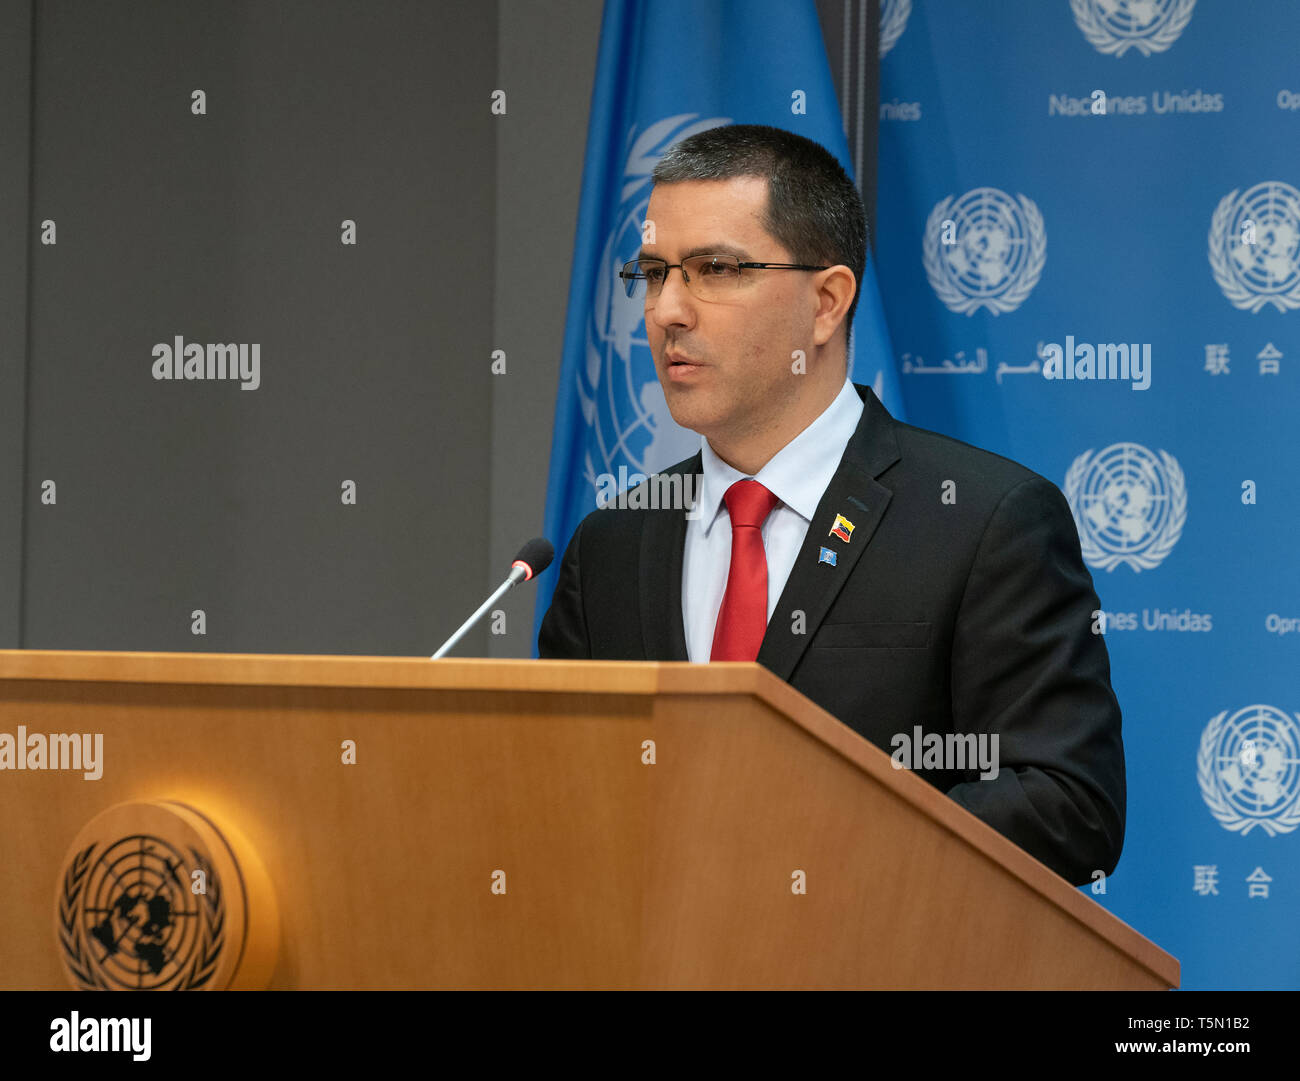 New York, NY - April 25, 2019: Press Briefing by Minister of the People's Power for Foreign Affairs of the Bolivarian Republic of Venezuela Jorge Arreaza at United Nations Headquarters - Stock Image